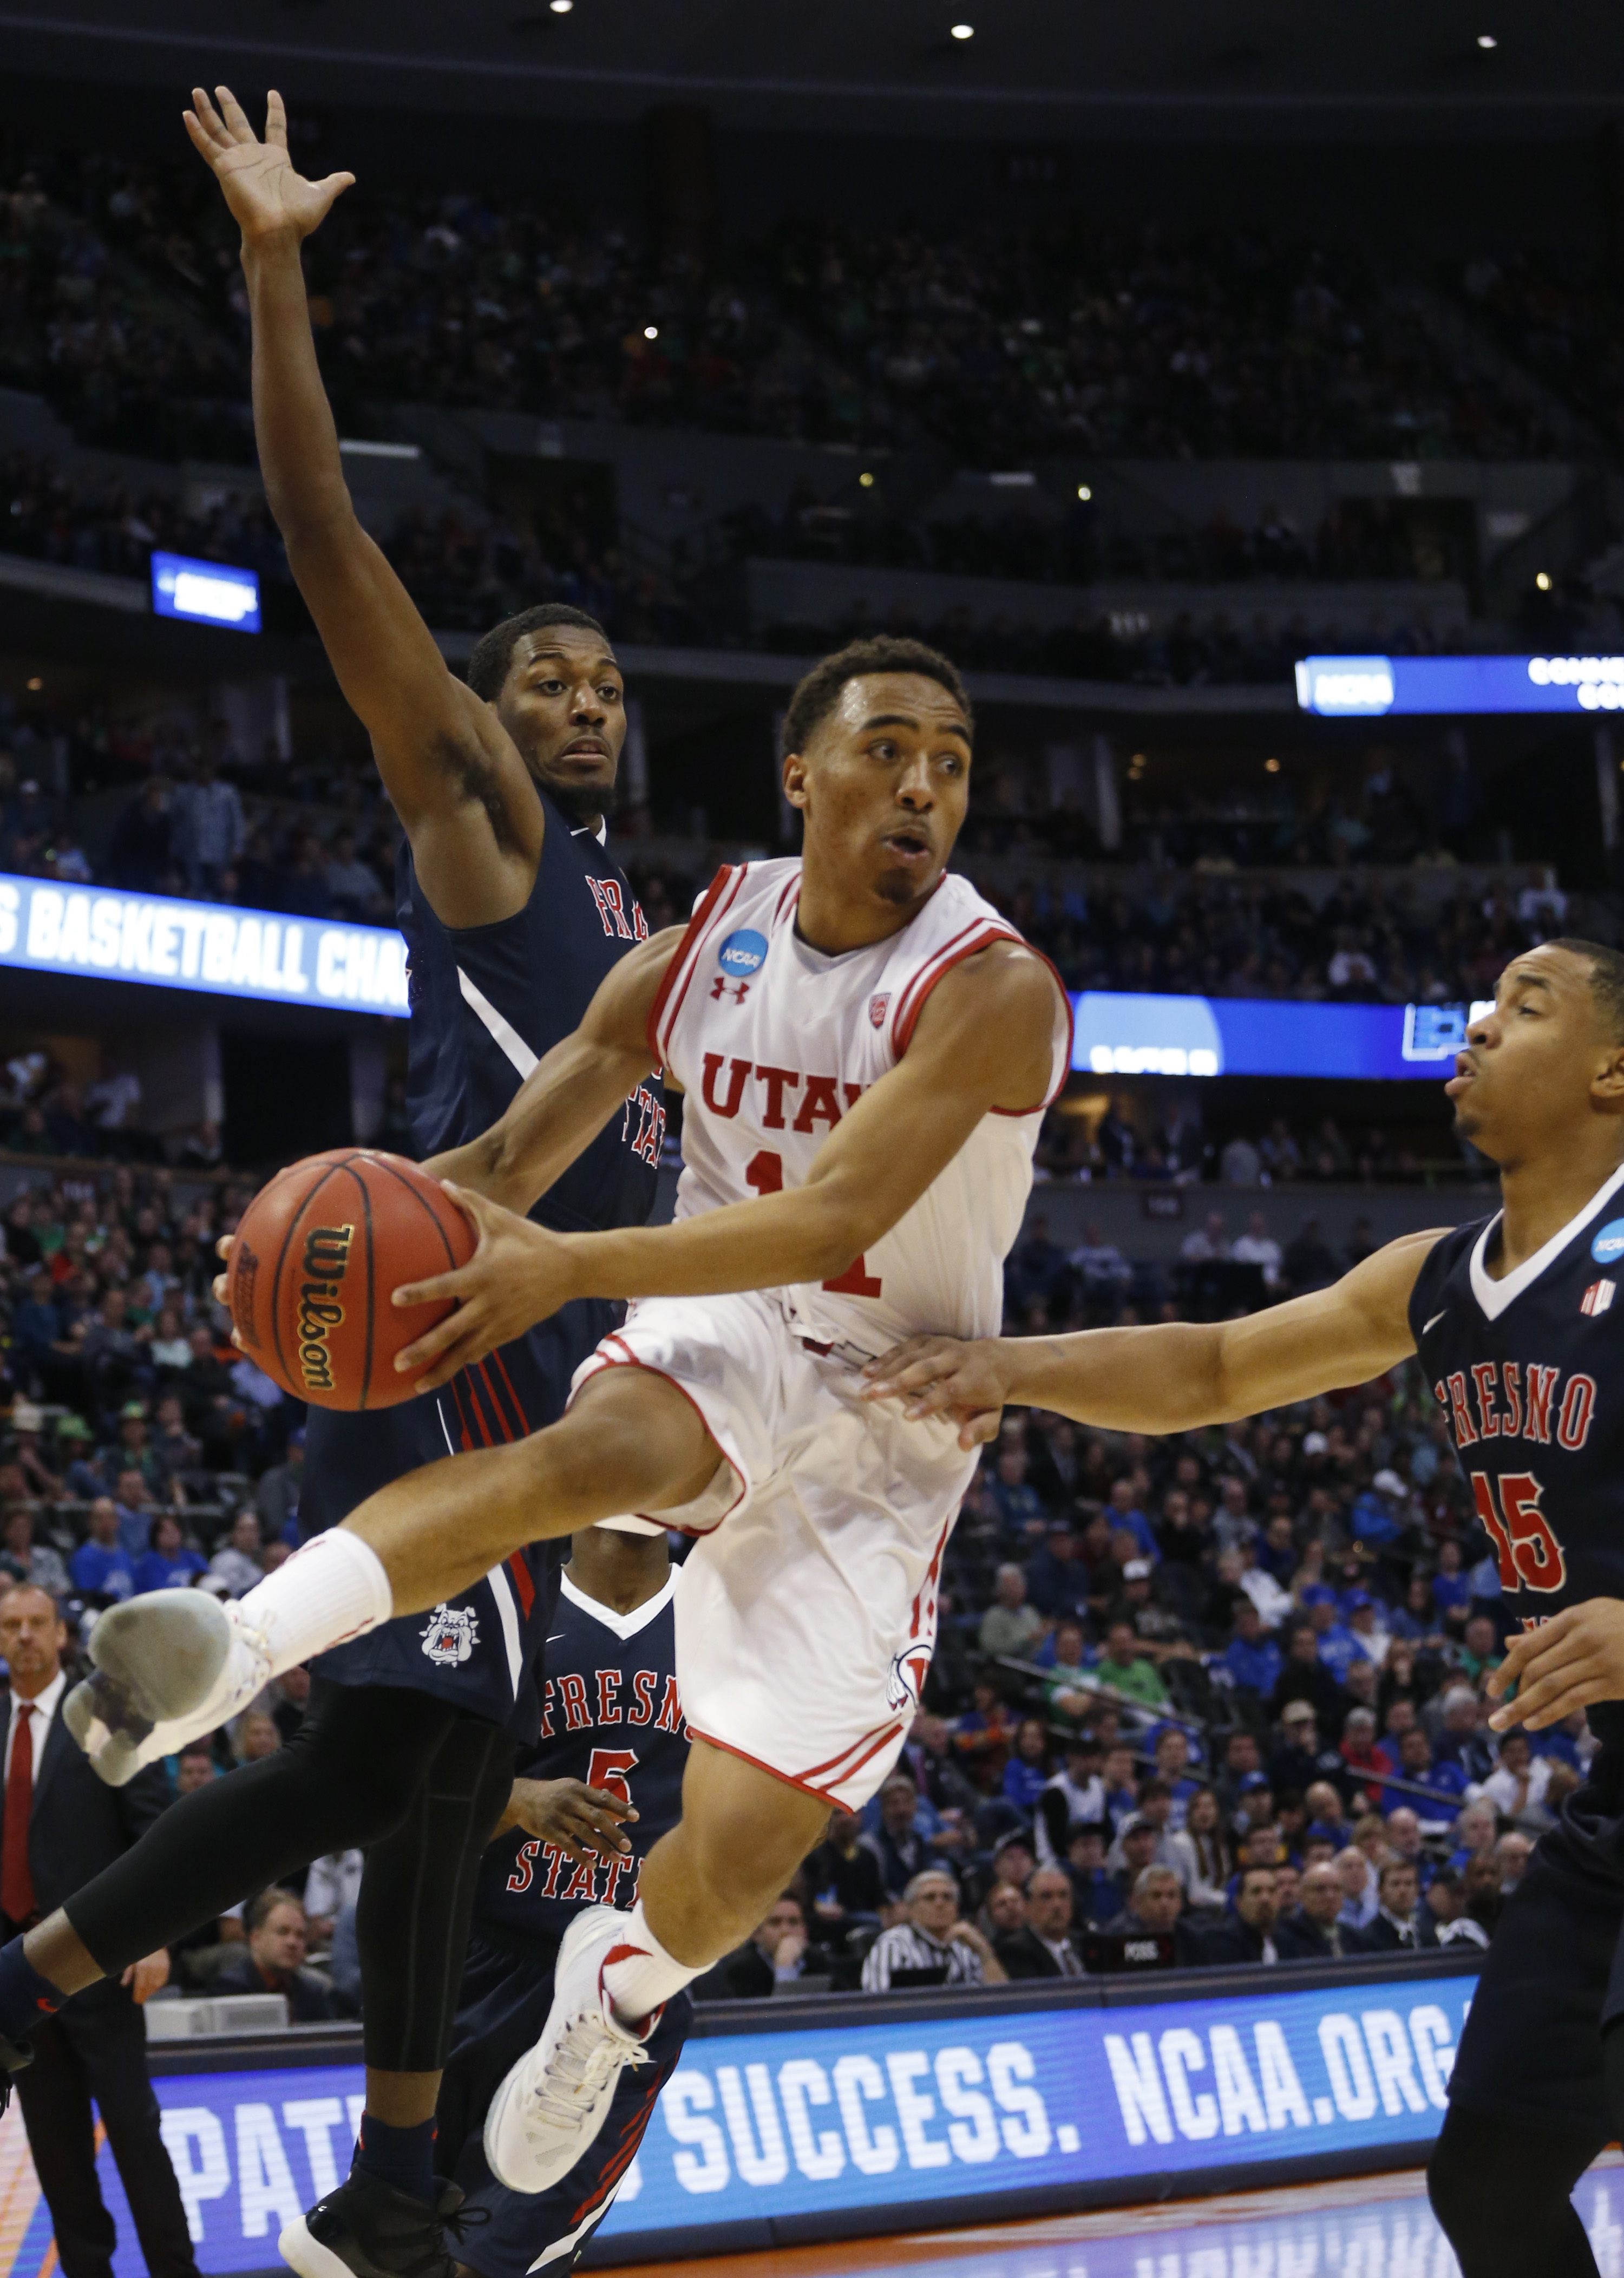 Utah guard Brandon Taylor, center, drives past Fresno State guards Paul Watson, left, and Lionel Ellison III for a shot in the second half of a first-round men's college basketball game Thursday, March 17, 2016, in the NCAA Tournament in Denver. Utah won